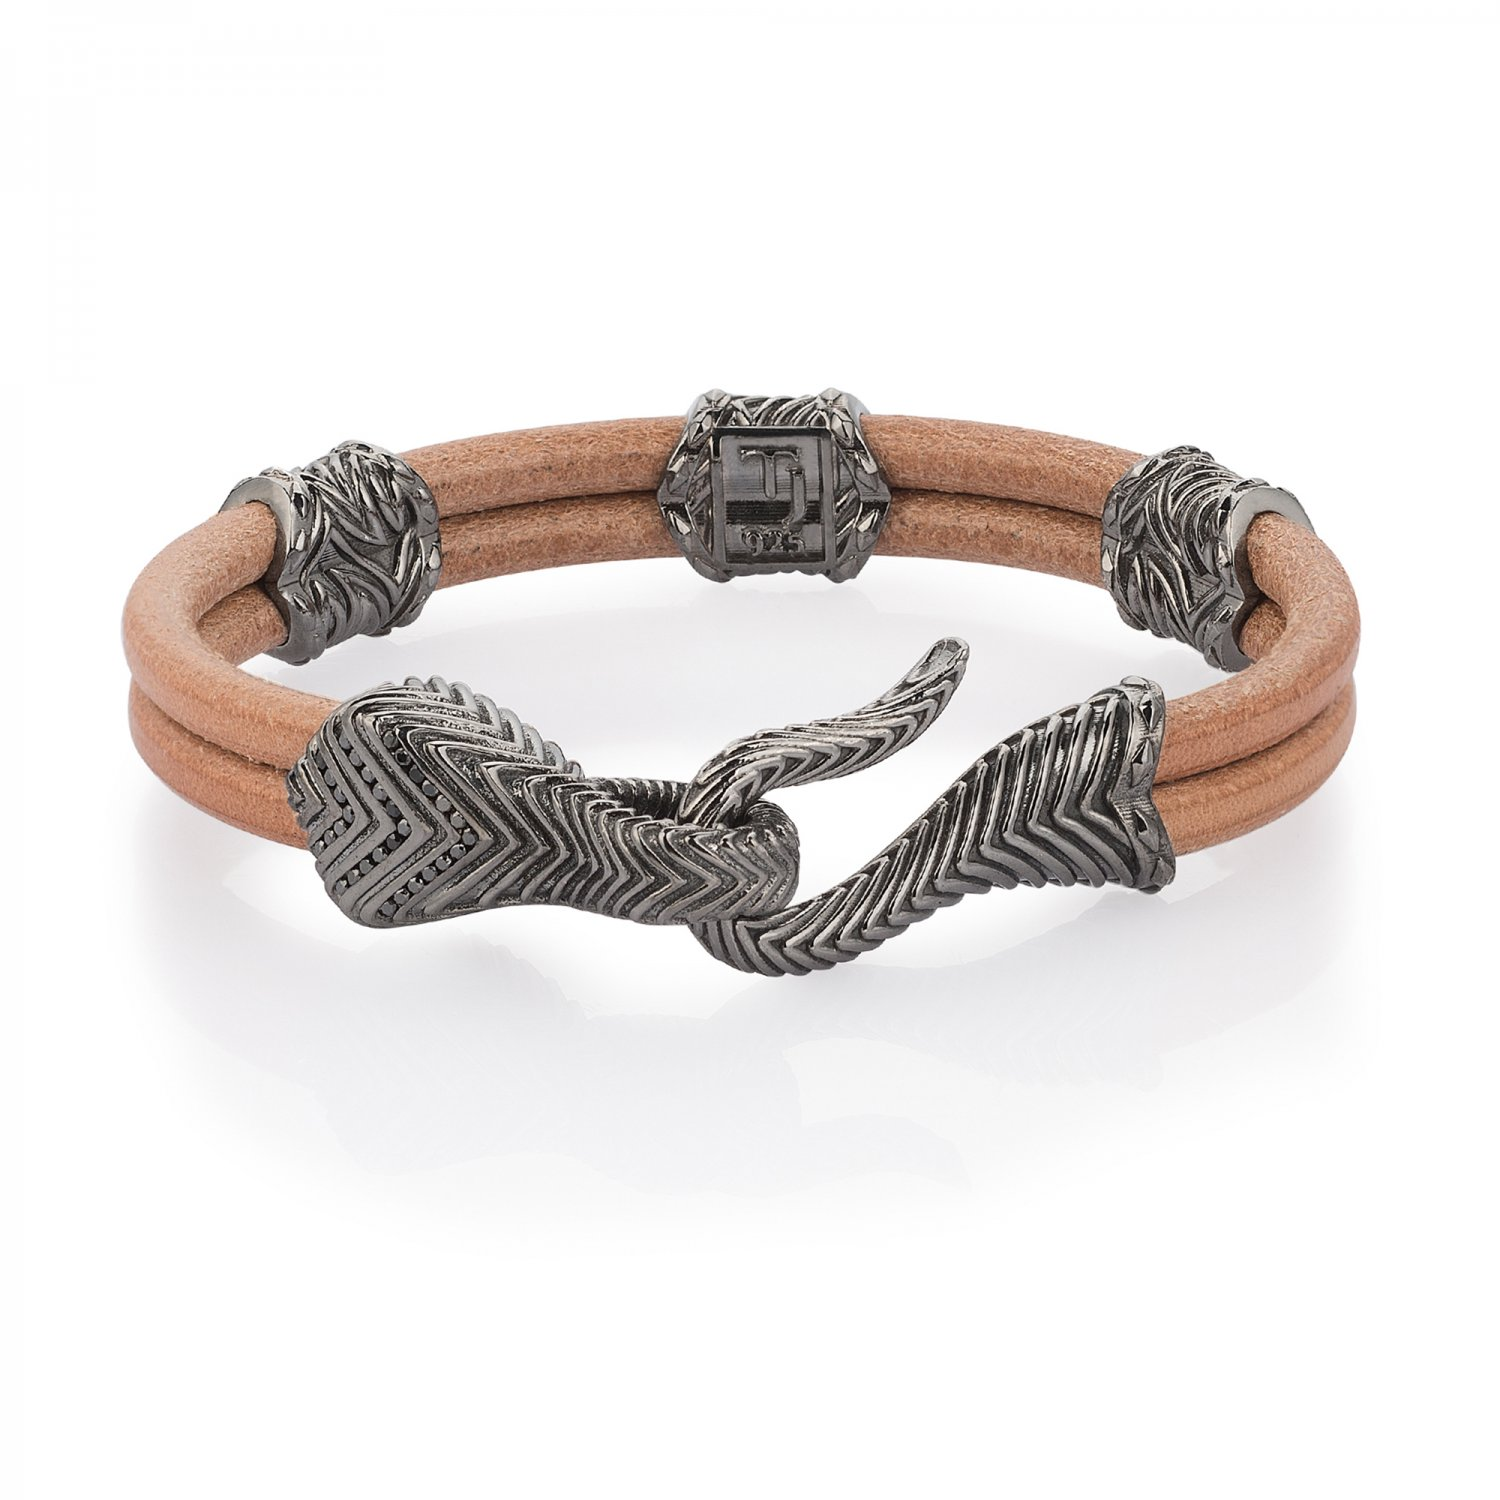 Sterling Silver Serpi Bracelet with Black Diamonds in Natural Beige Leather